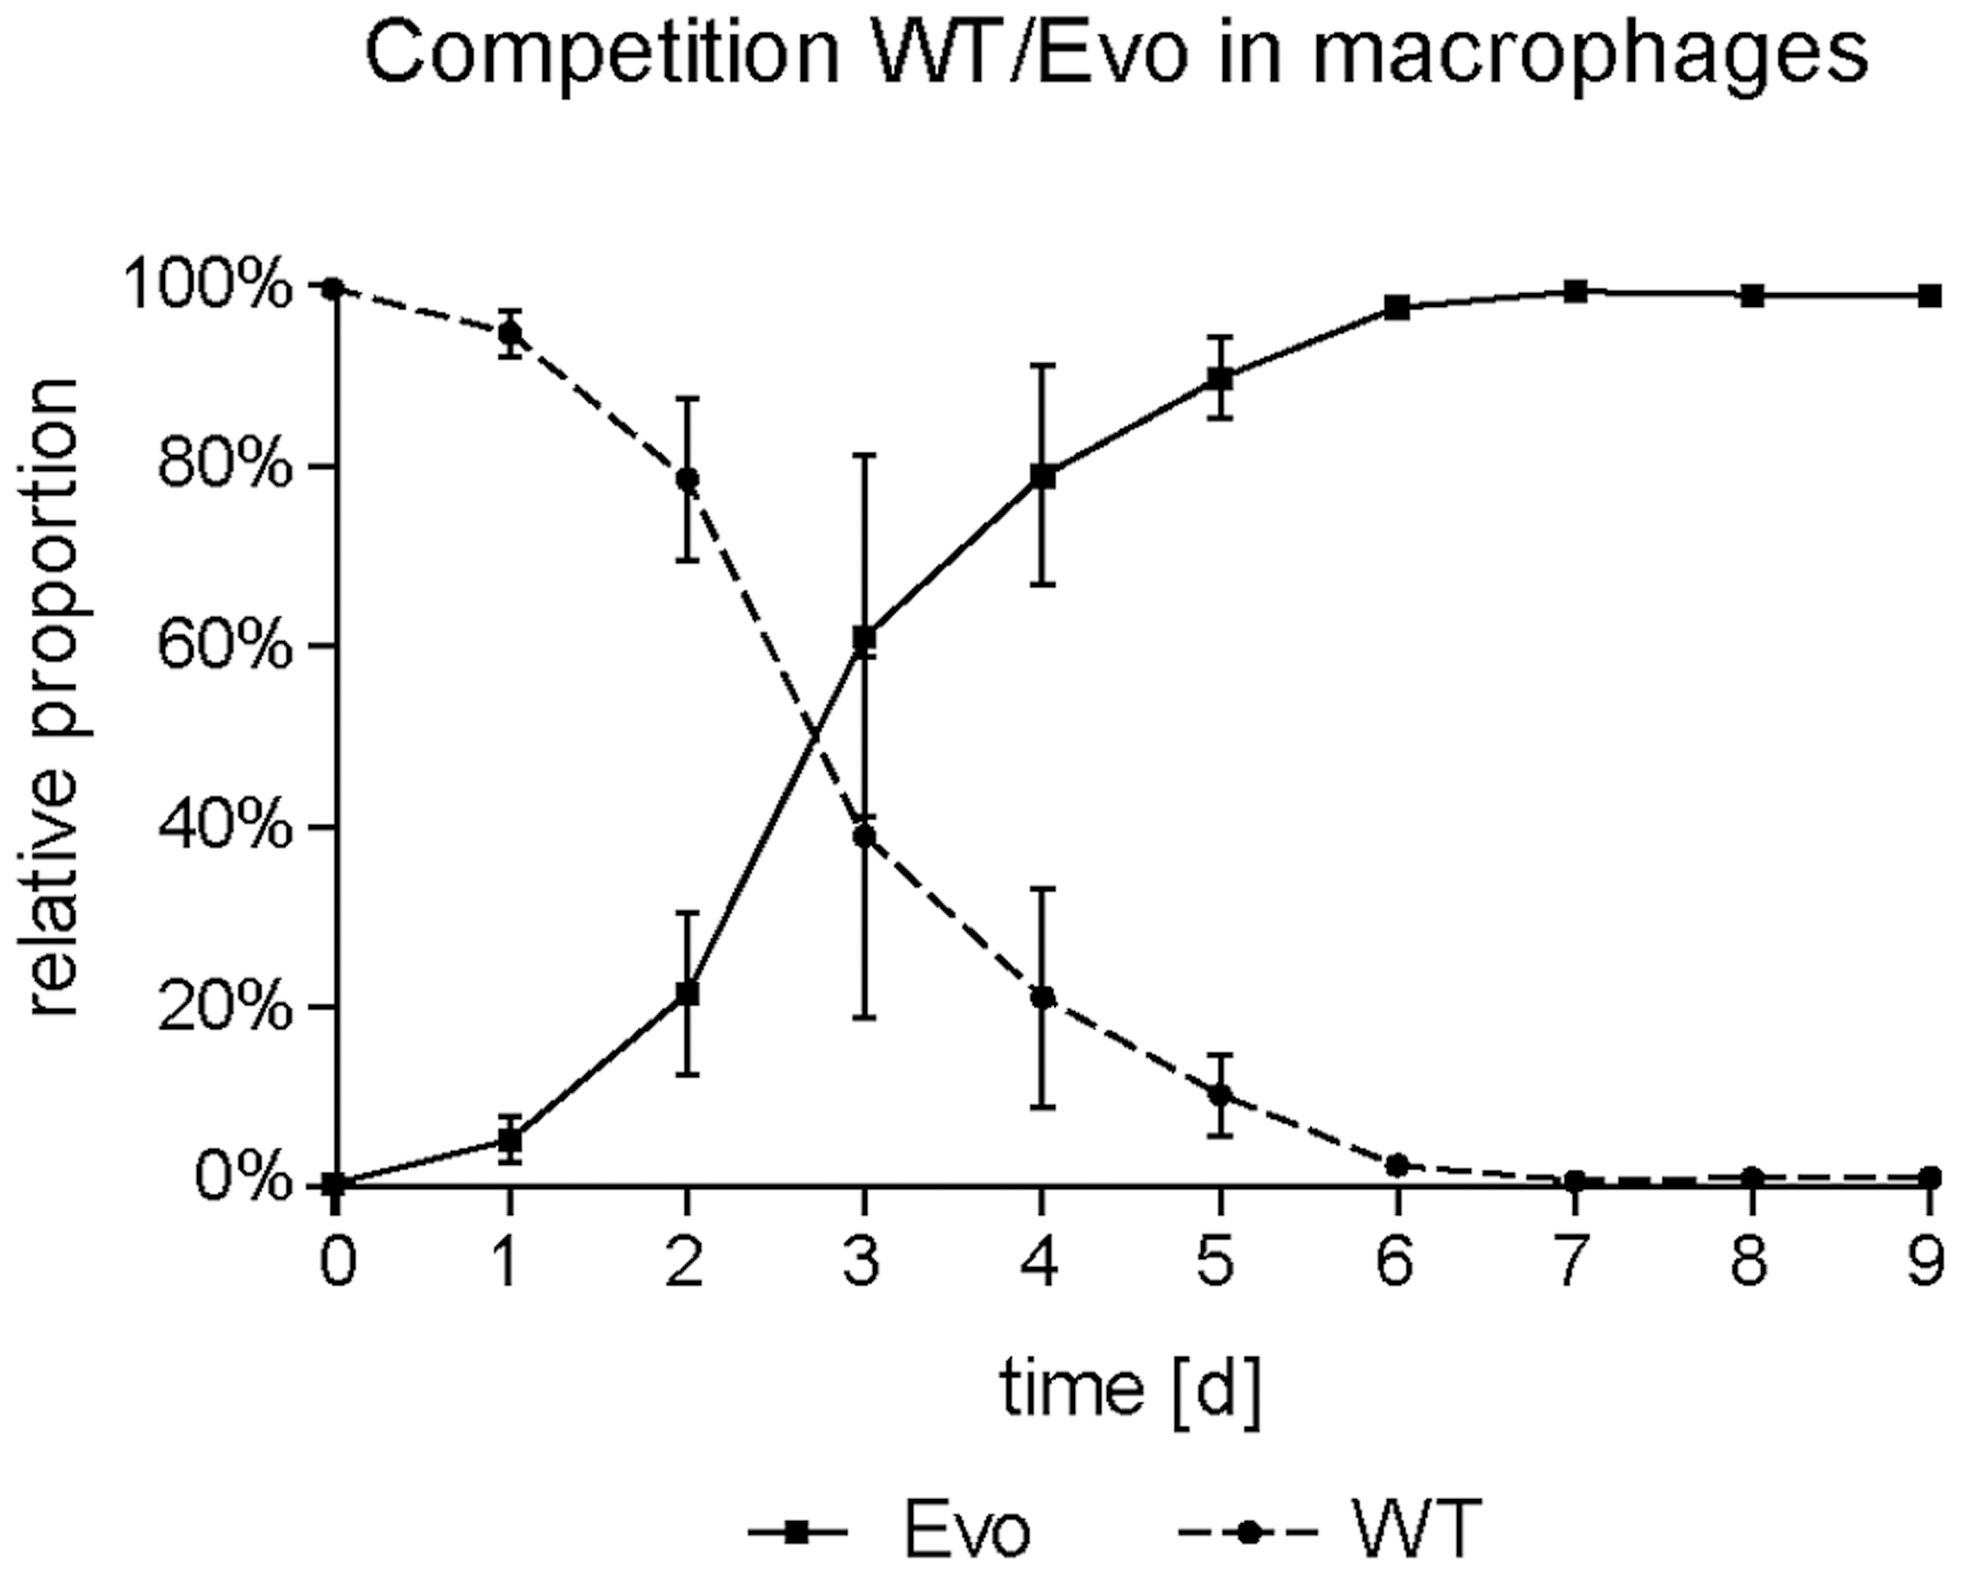 Increased fitness of the evolved strain in macrophages in direct competition.